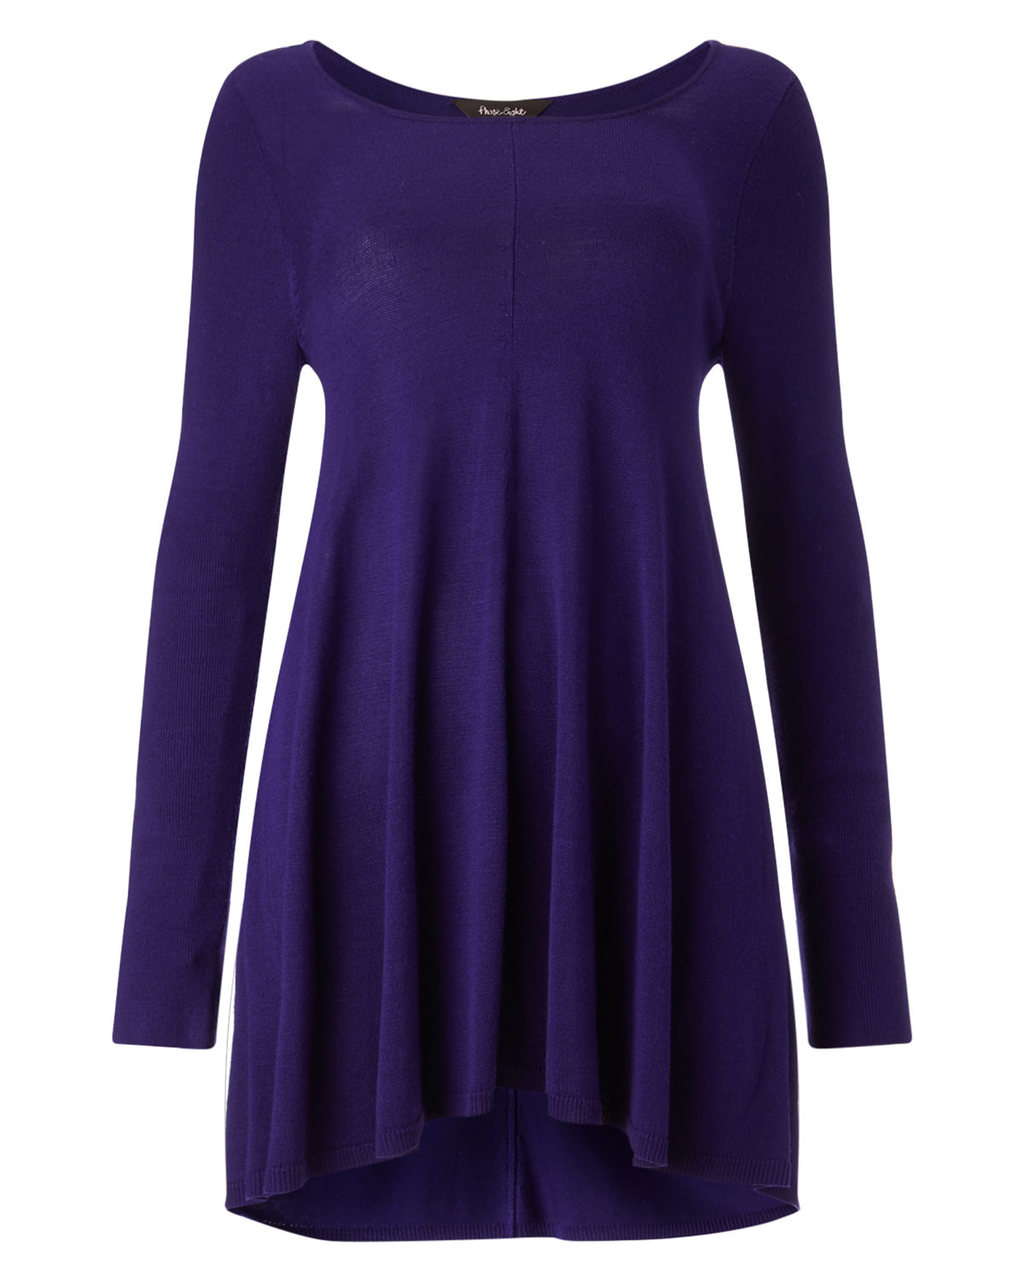 Cali Swing Knit - neckline: scoop neck; pattern: plain; length: below the bottom; style: tunic; predominant colour: purple; occasions: casual; fibres: cotton - mix; fit: loose; sleeve length: long sleeve; sleeve style: standard; texture group: knits/crochet; pattern type: knitted - fine stitch; season: a/w 2015; wardrobe: highlight